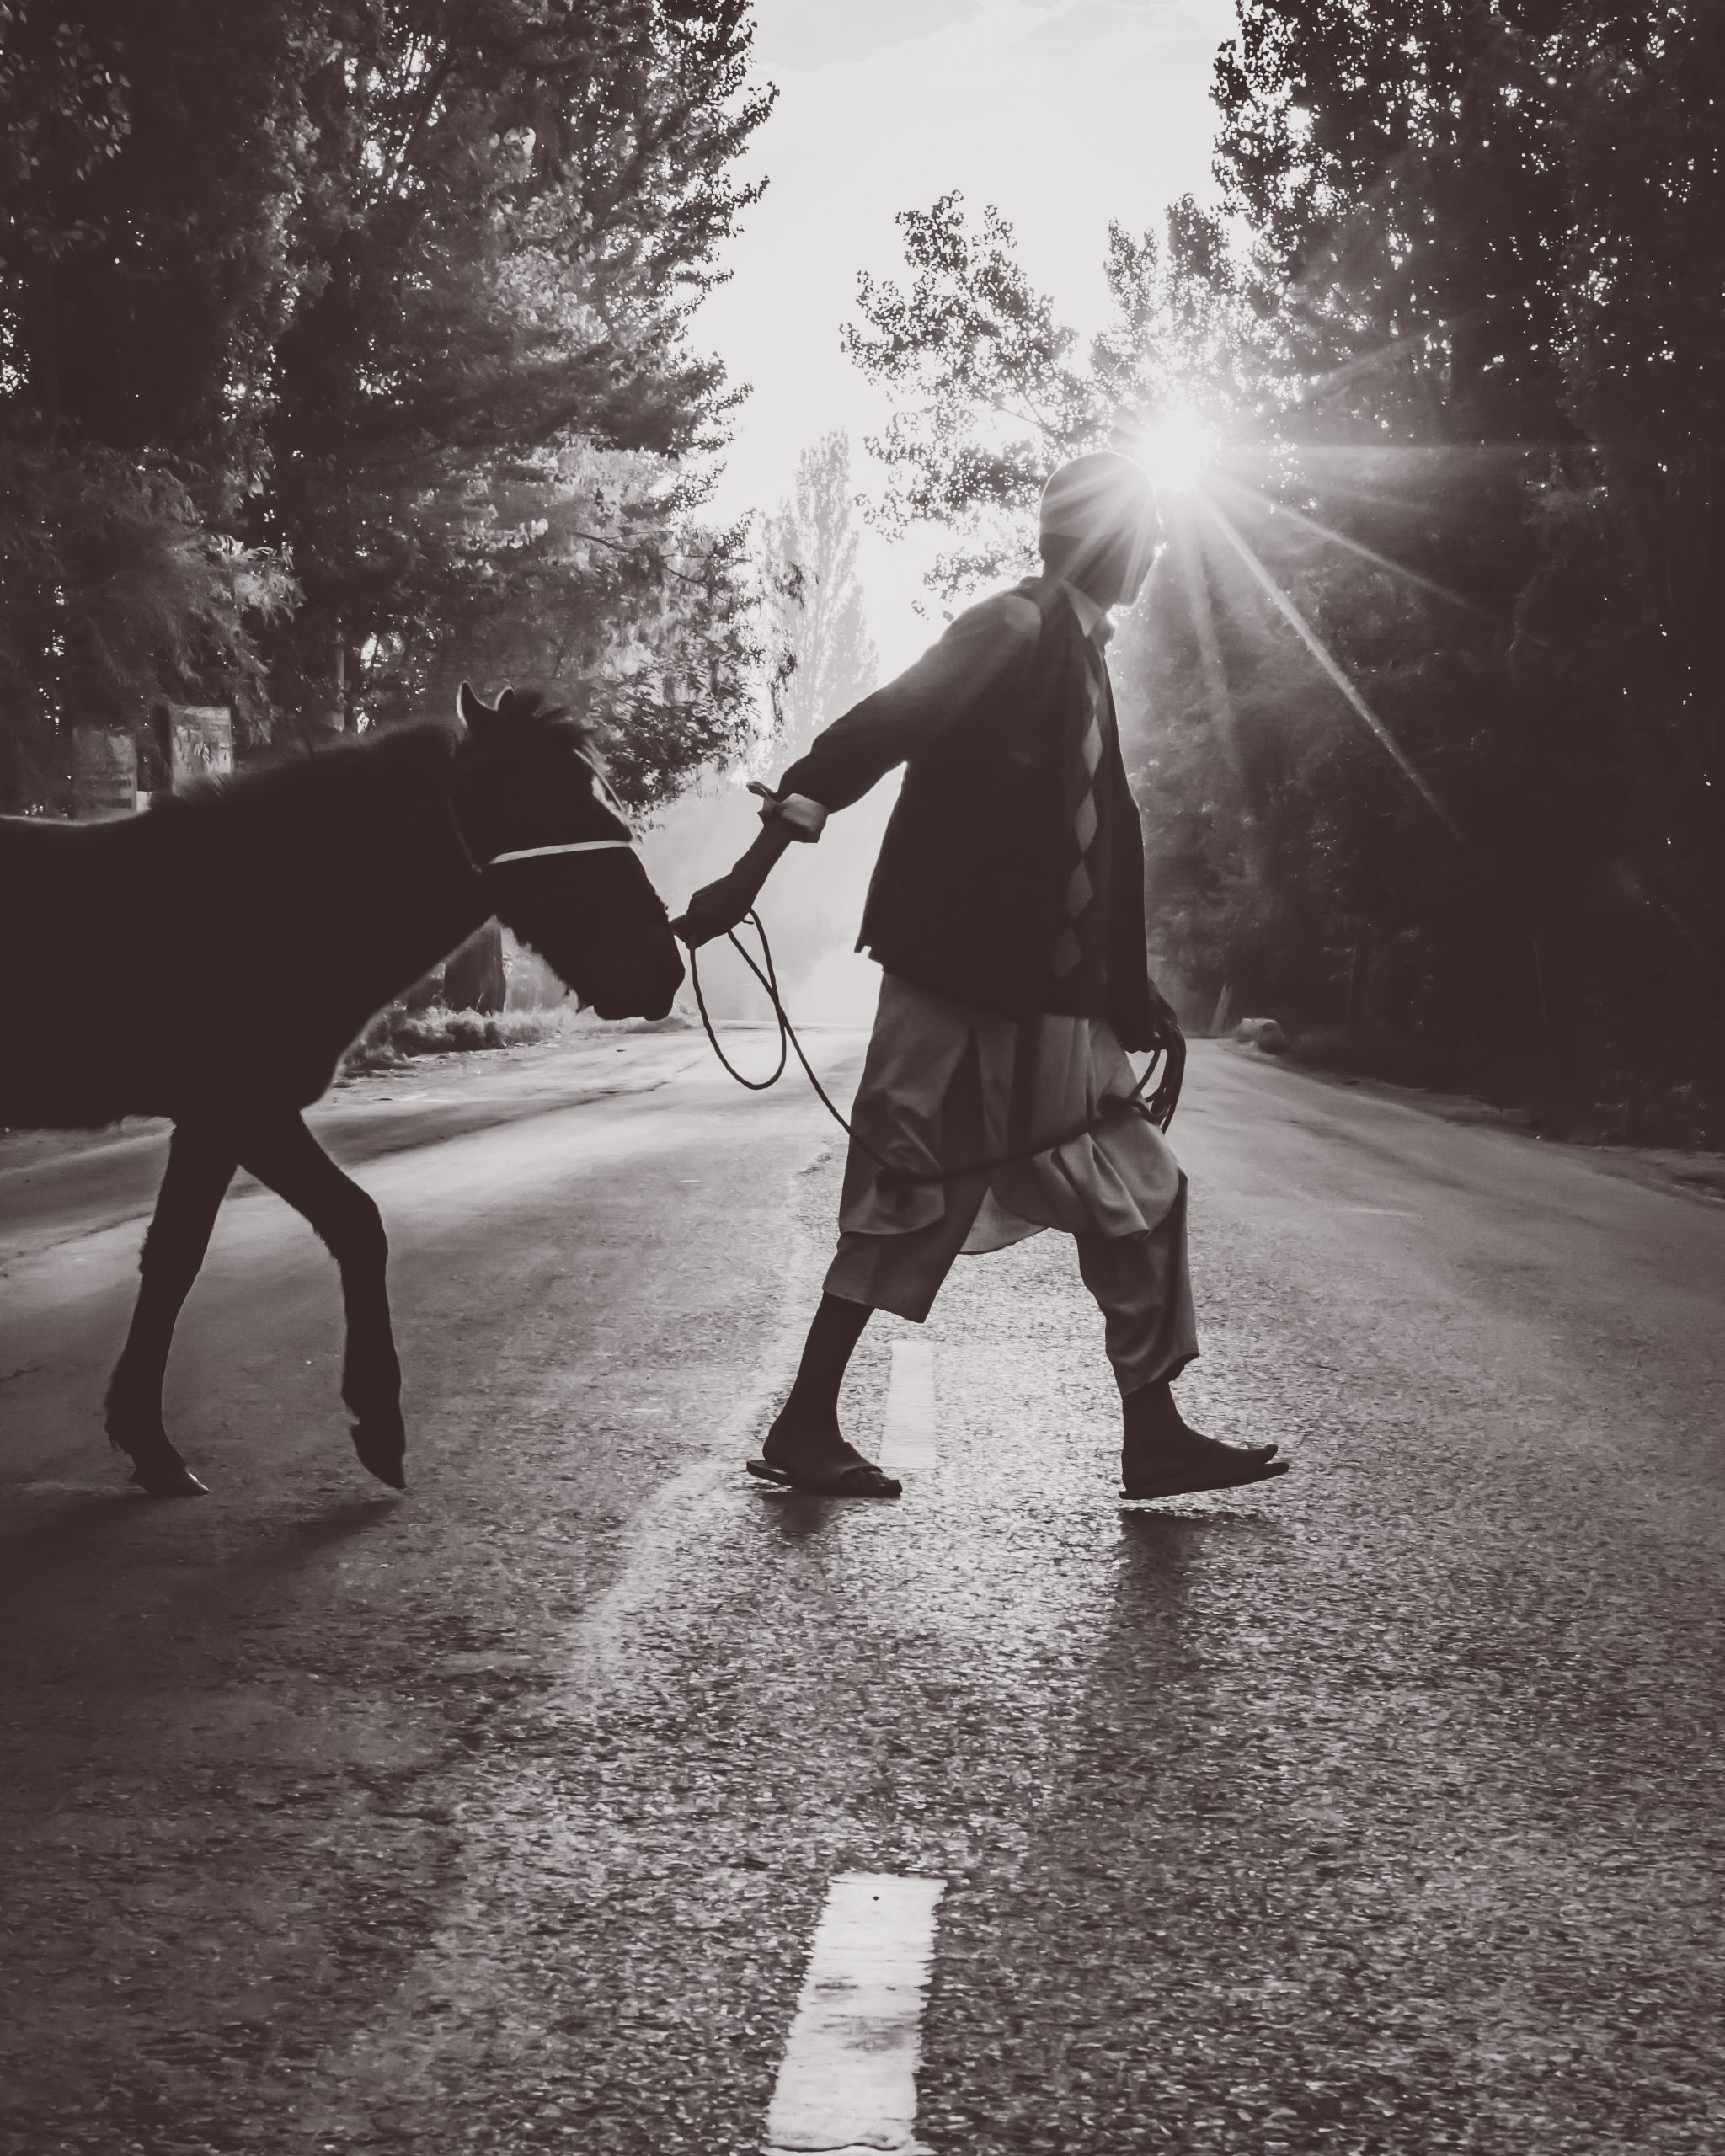 An Old man crossing road with his horse.